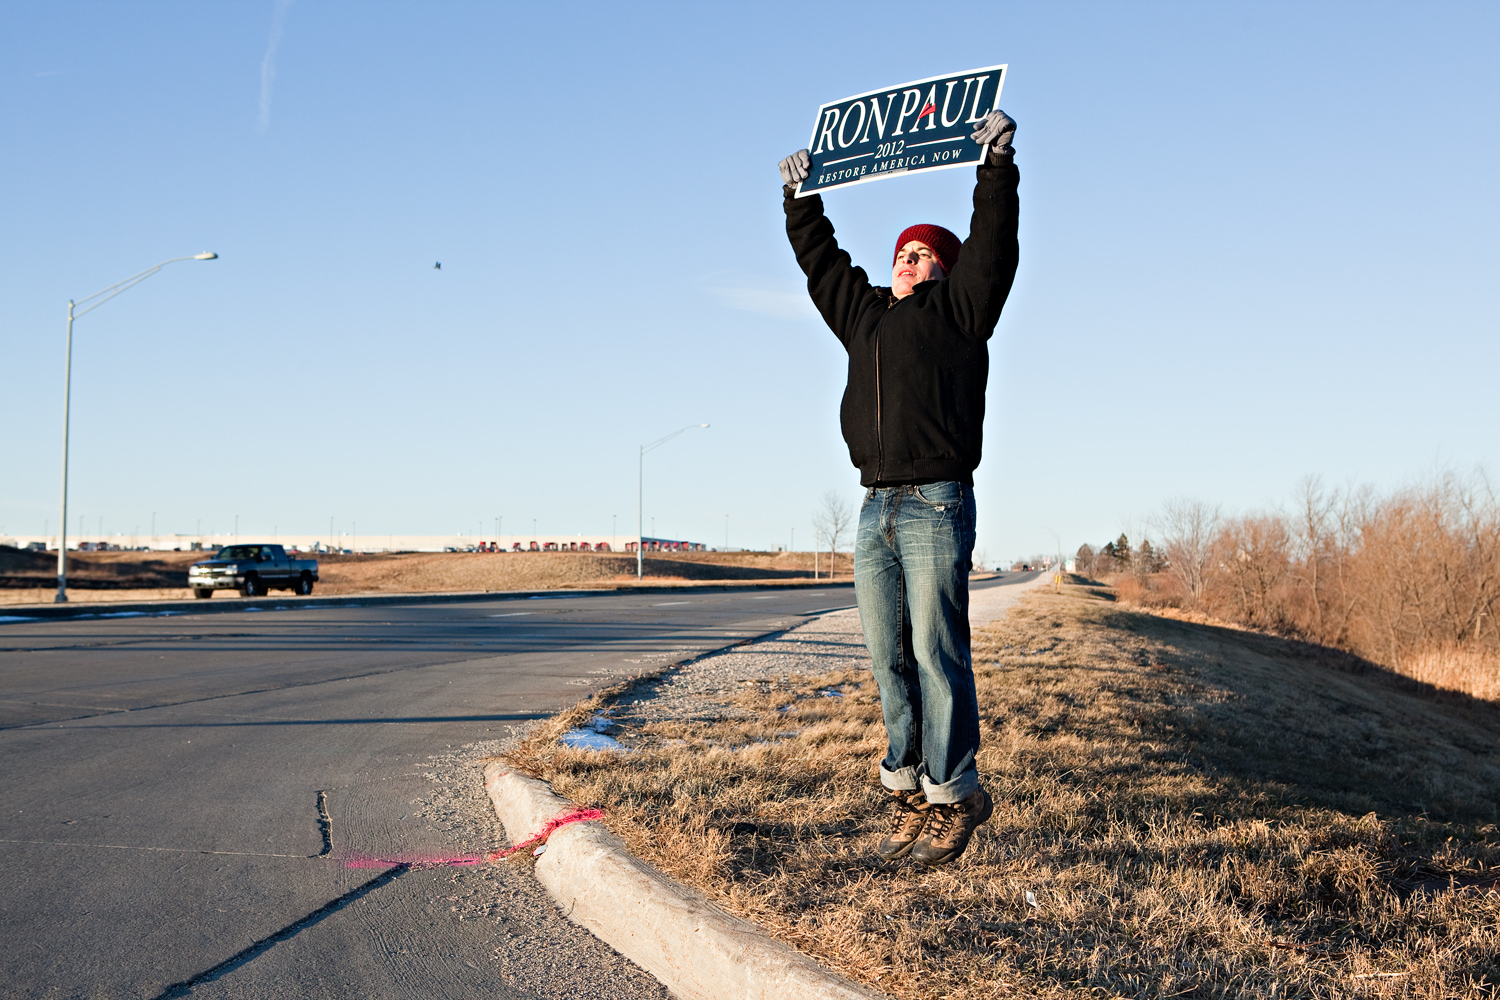 A Ron Paul supporter jumps up and down to keep warm and attract attendees to a campaign event in Cedar Falls, Iowa on January 2, 2012.